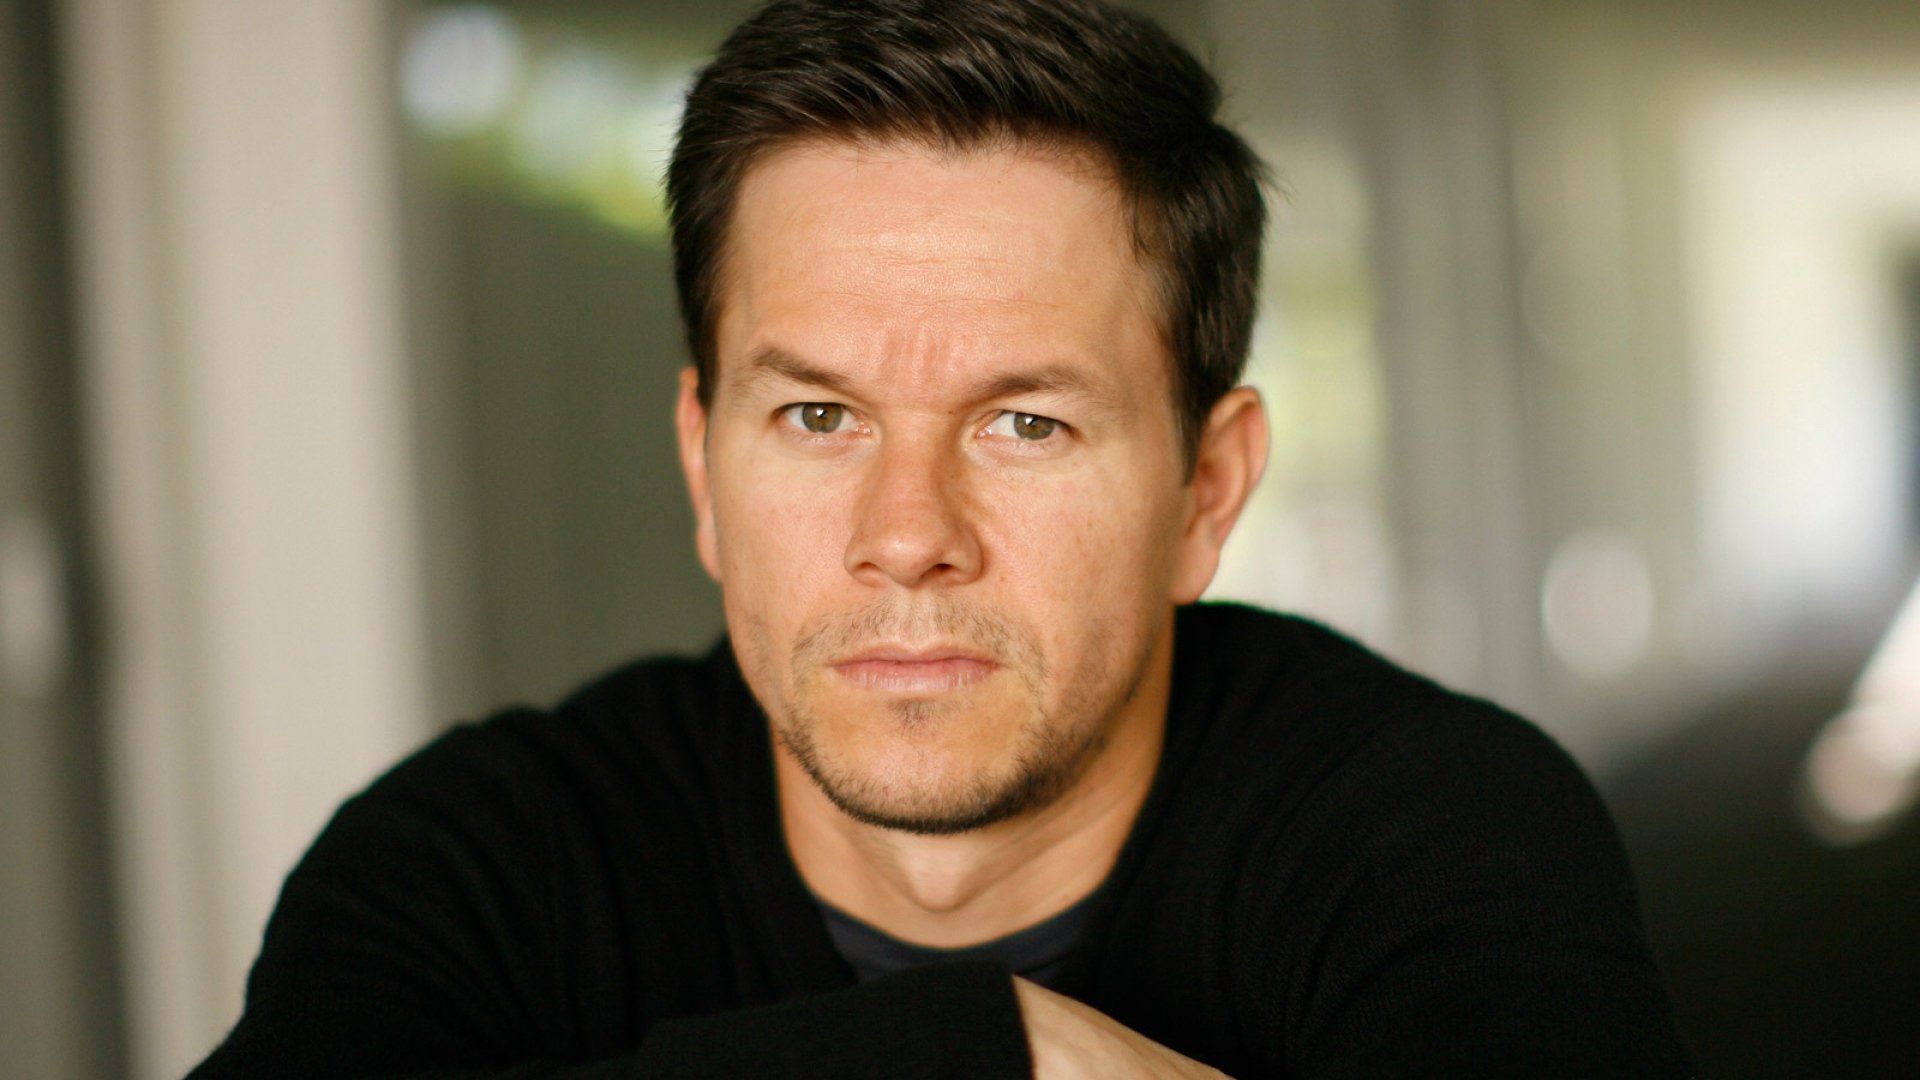 Mark Wahlberg leads Forbes list of highest paid actors